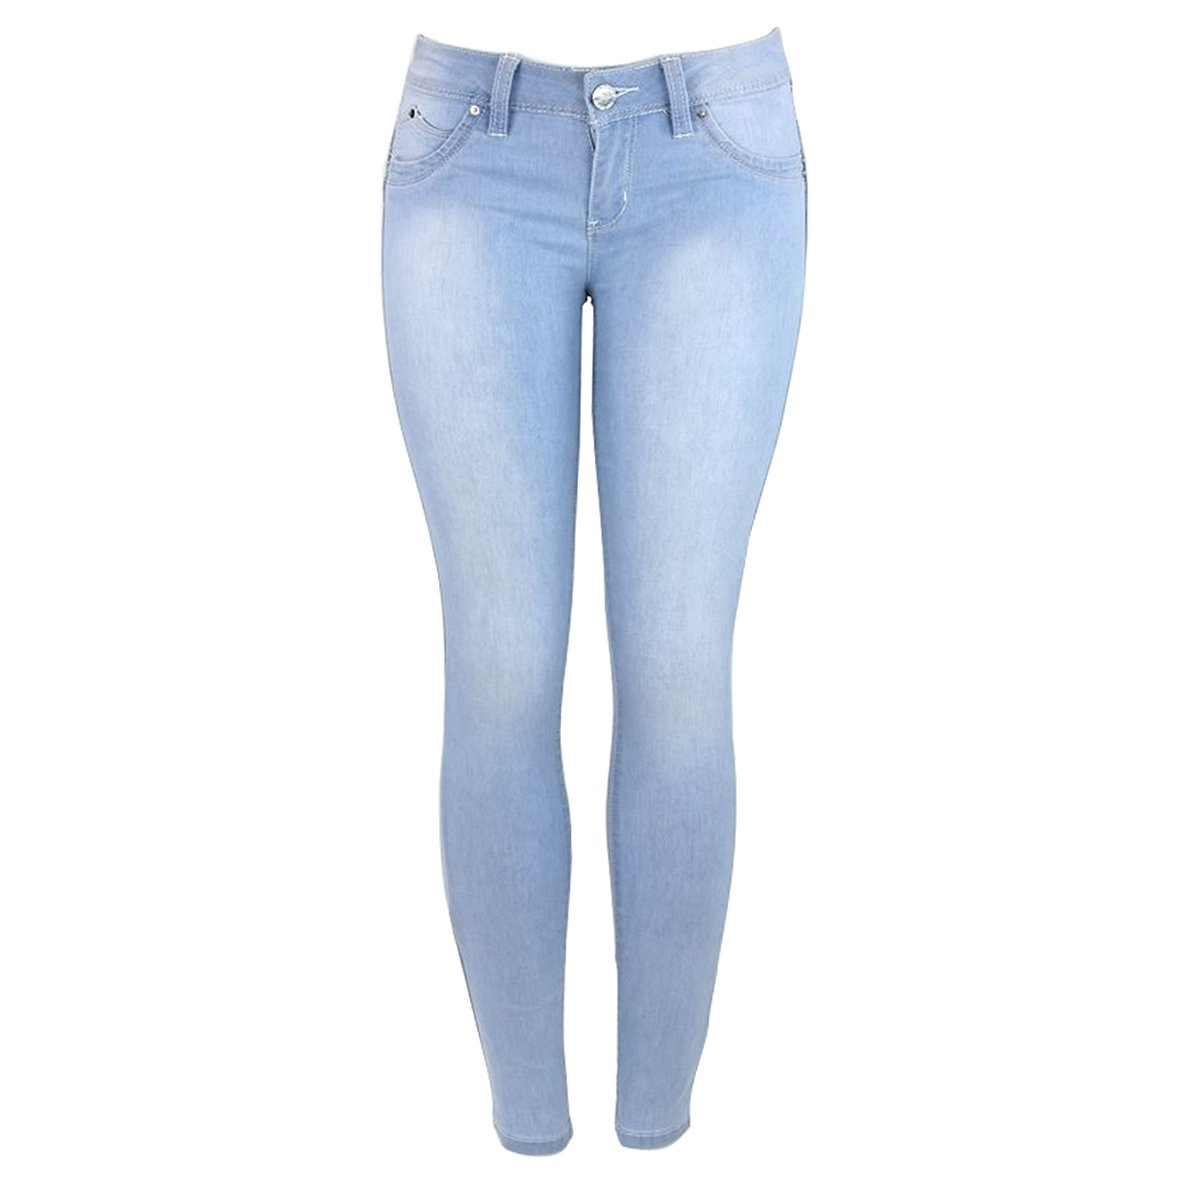 YMI Women's Better Butt Jeans,Denim Blue,7